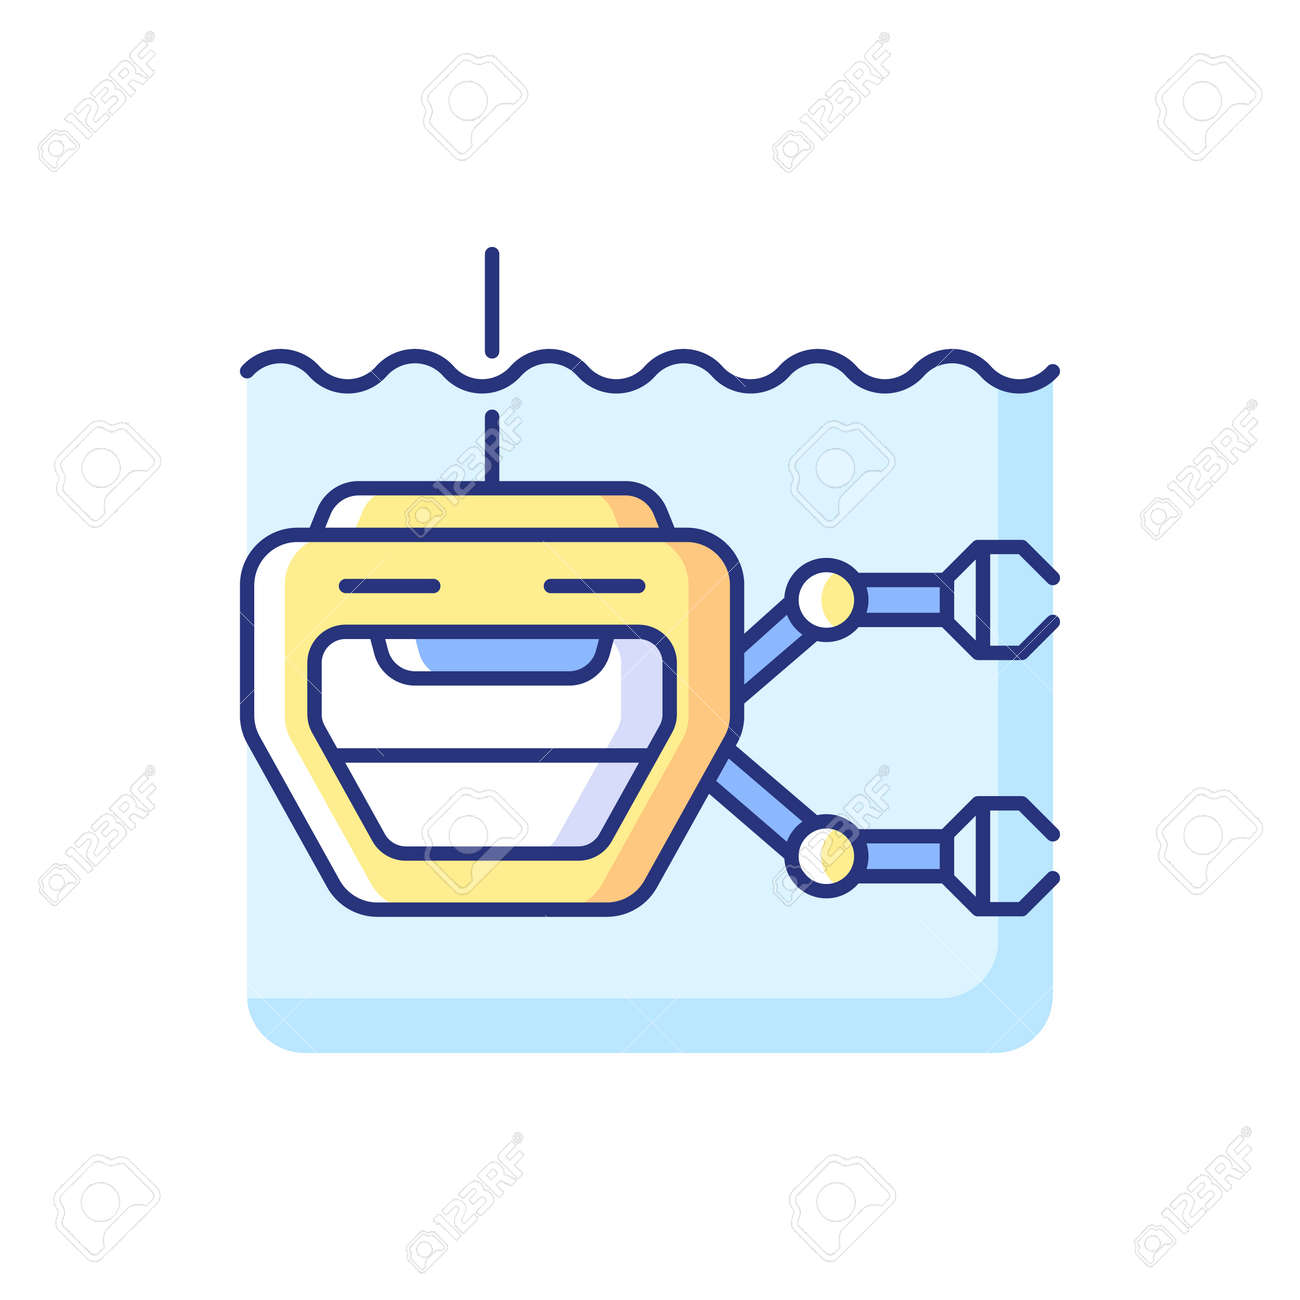 ROV RGB color icon. Remotely operated underwater vehicle is tethered underwater highly maneuverable mobile device used for ocean discovery. Isolated vector illustration - 167258912